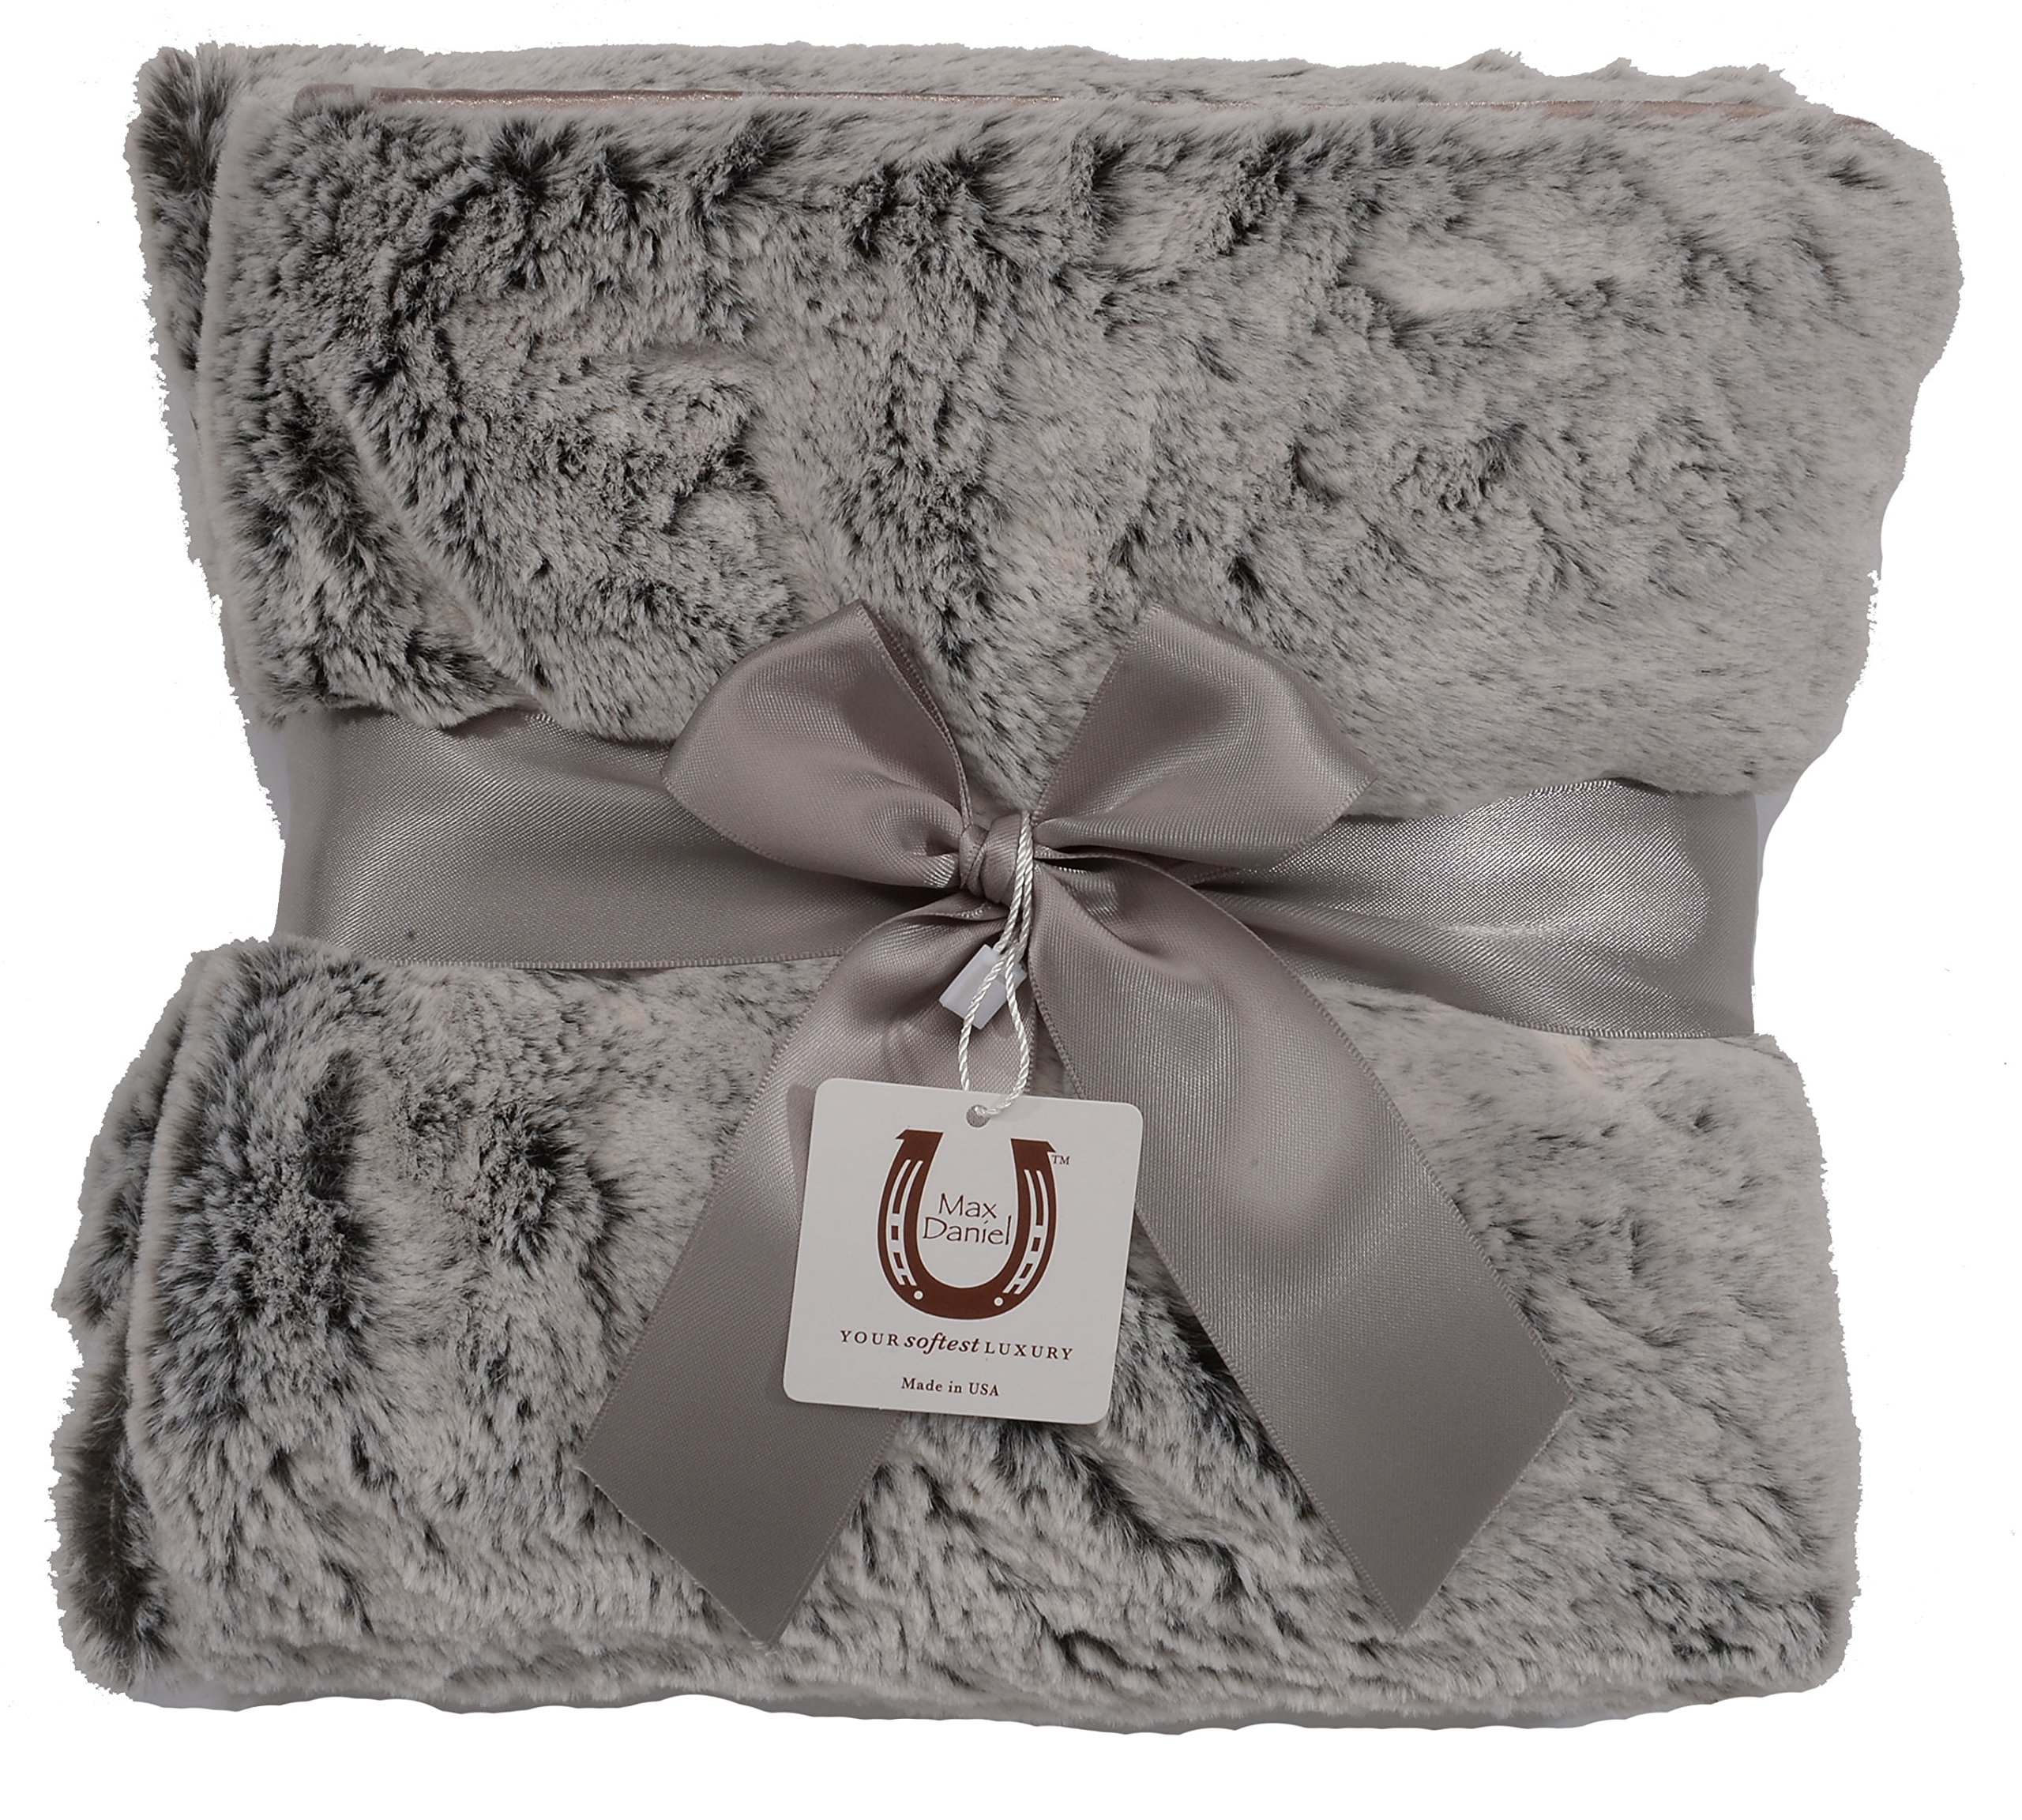 Max Daniel Chinchilla Fluff Baby Throw - Double Sided- Piped Edge 1180 by Max Daniel Designs